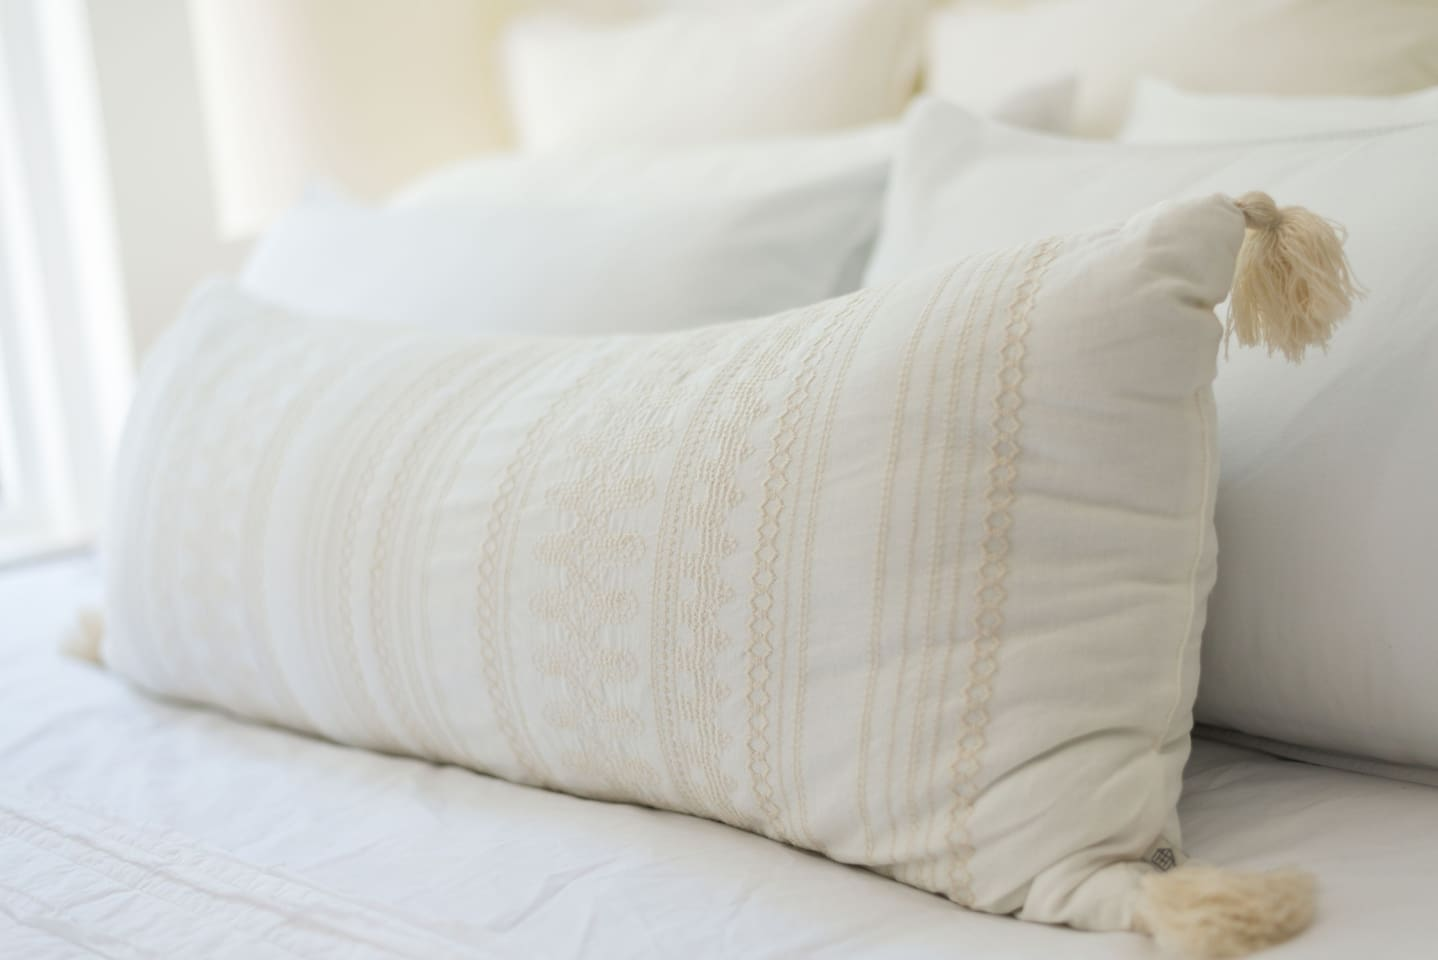 Our beds have 650 thread count sheets and plenty of pillows for a perfect night's sleep.